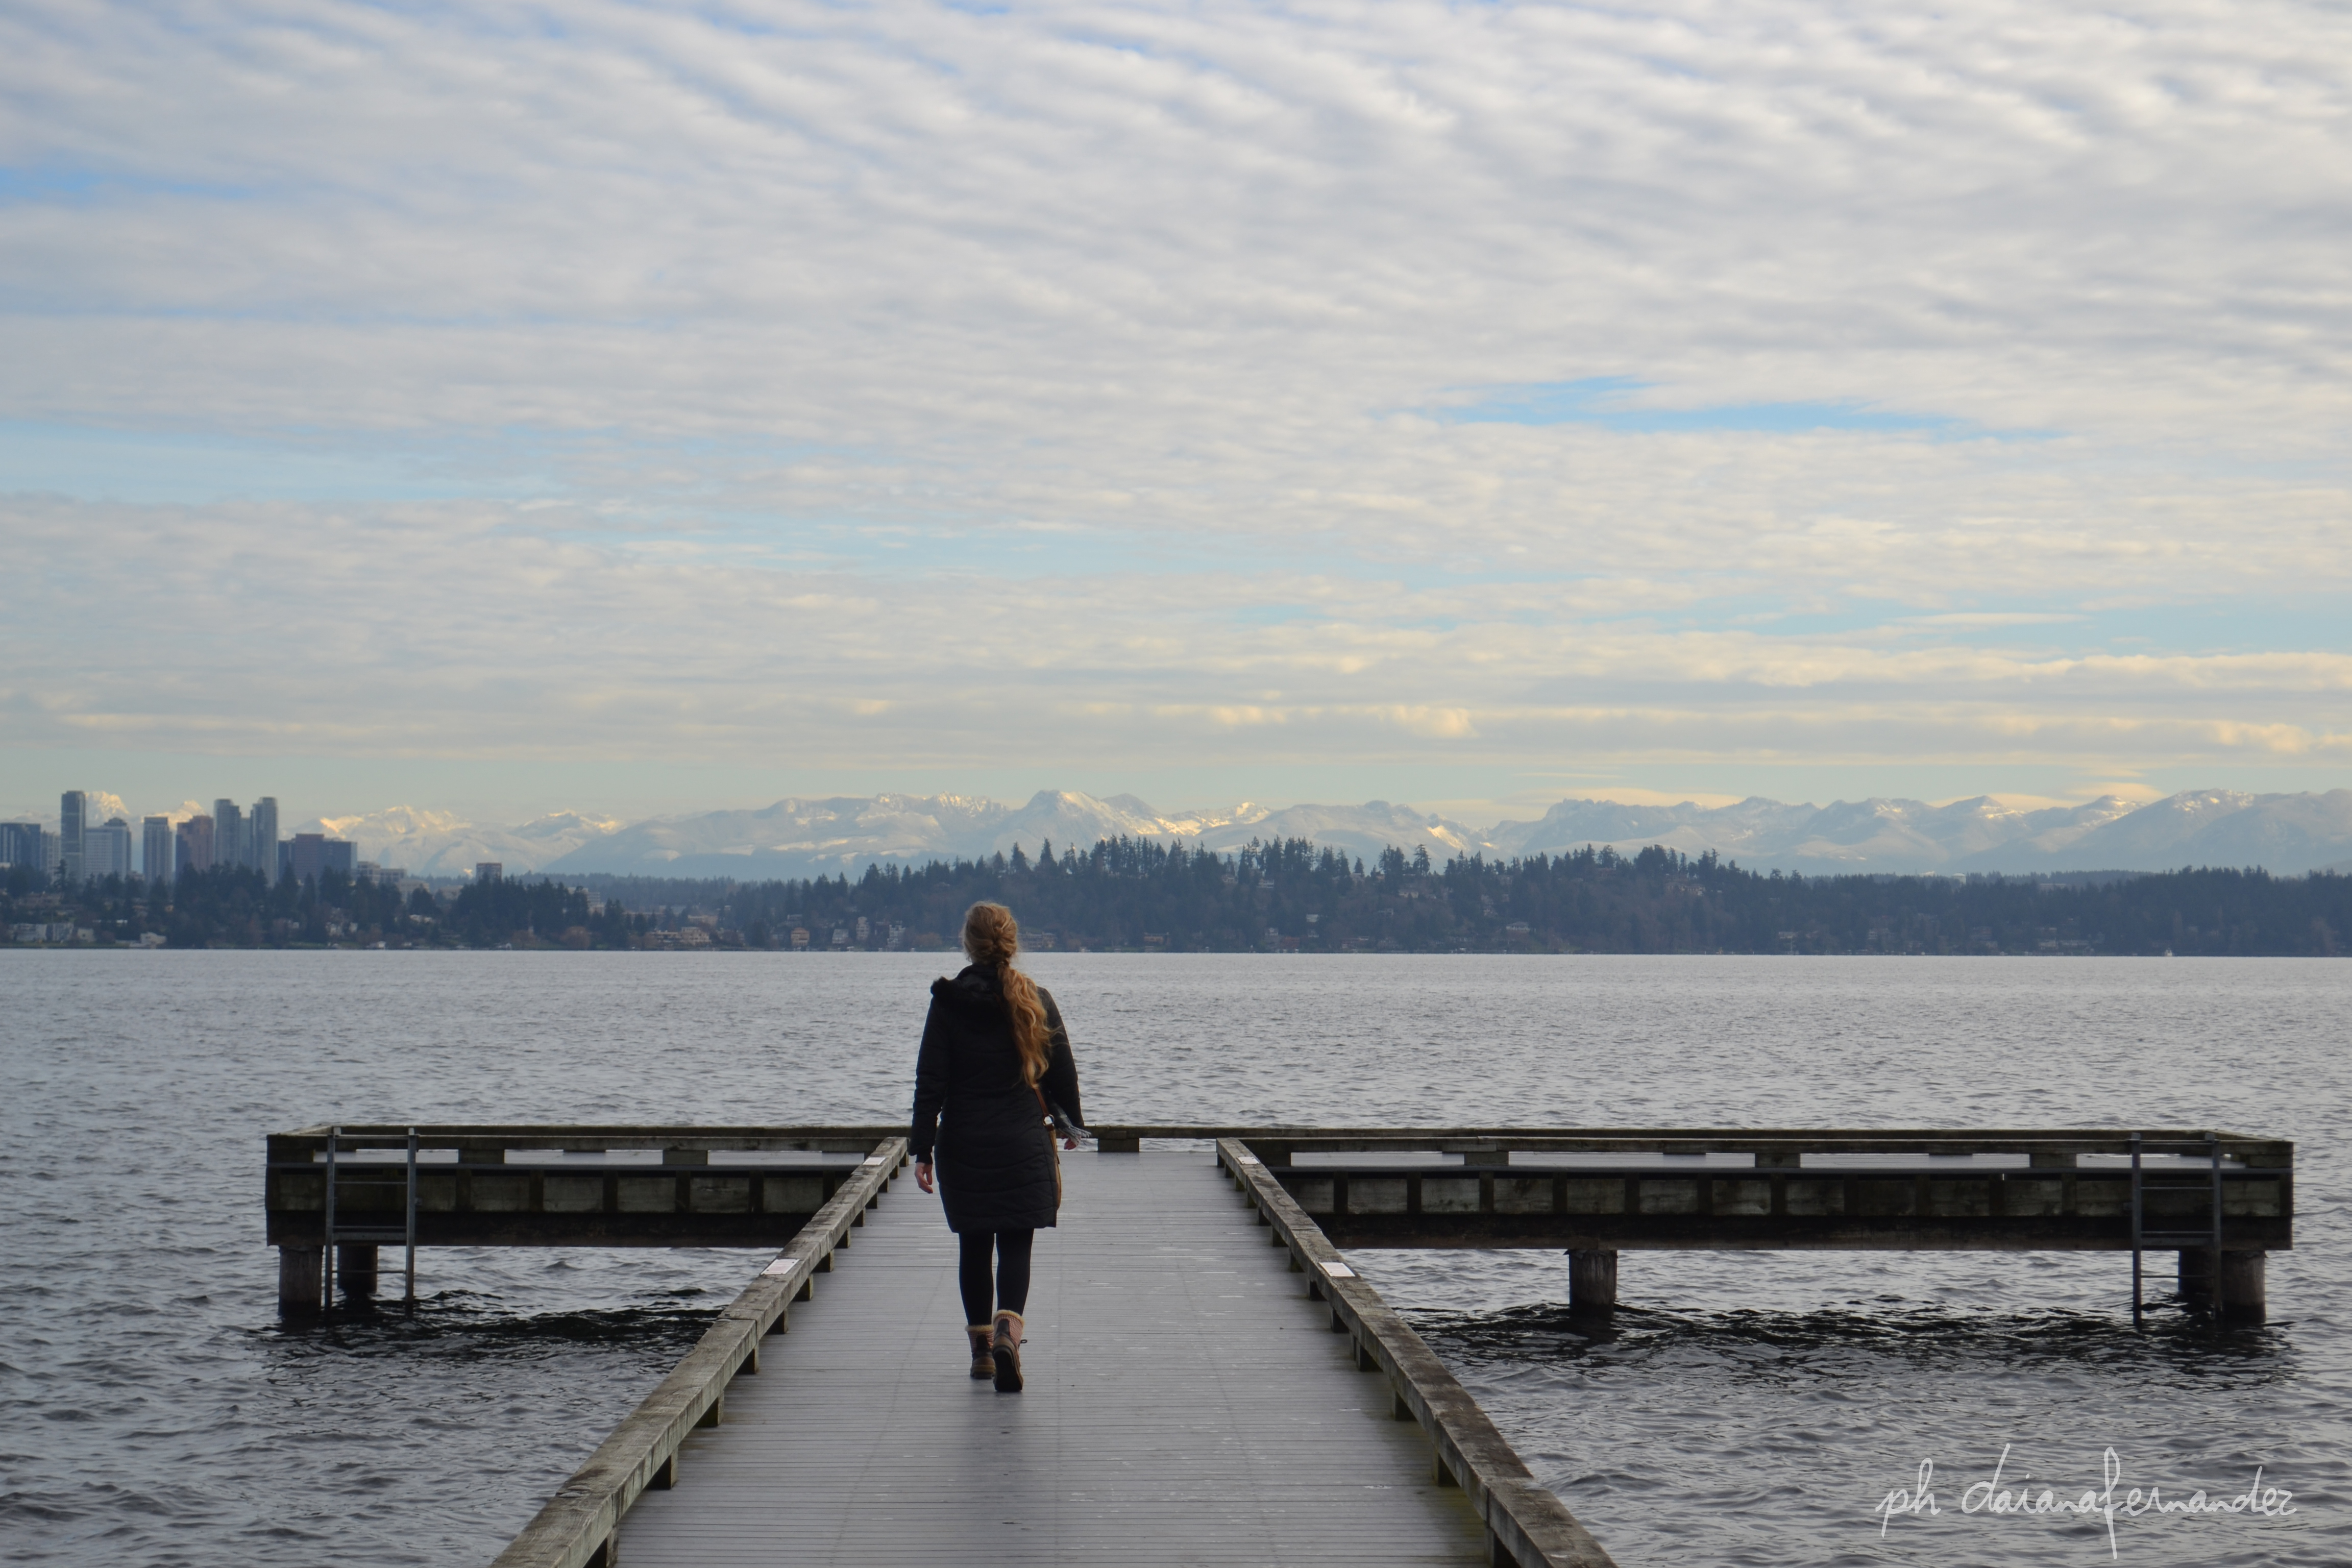 Vivir en Seattle Lake Washington